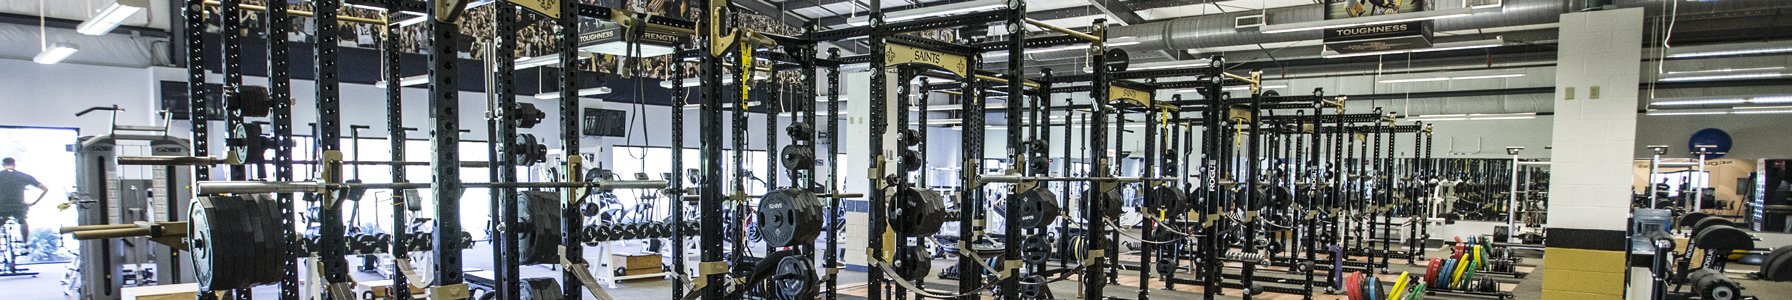 Facility outfitting custom quote request form rogue fitness